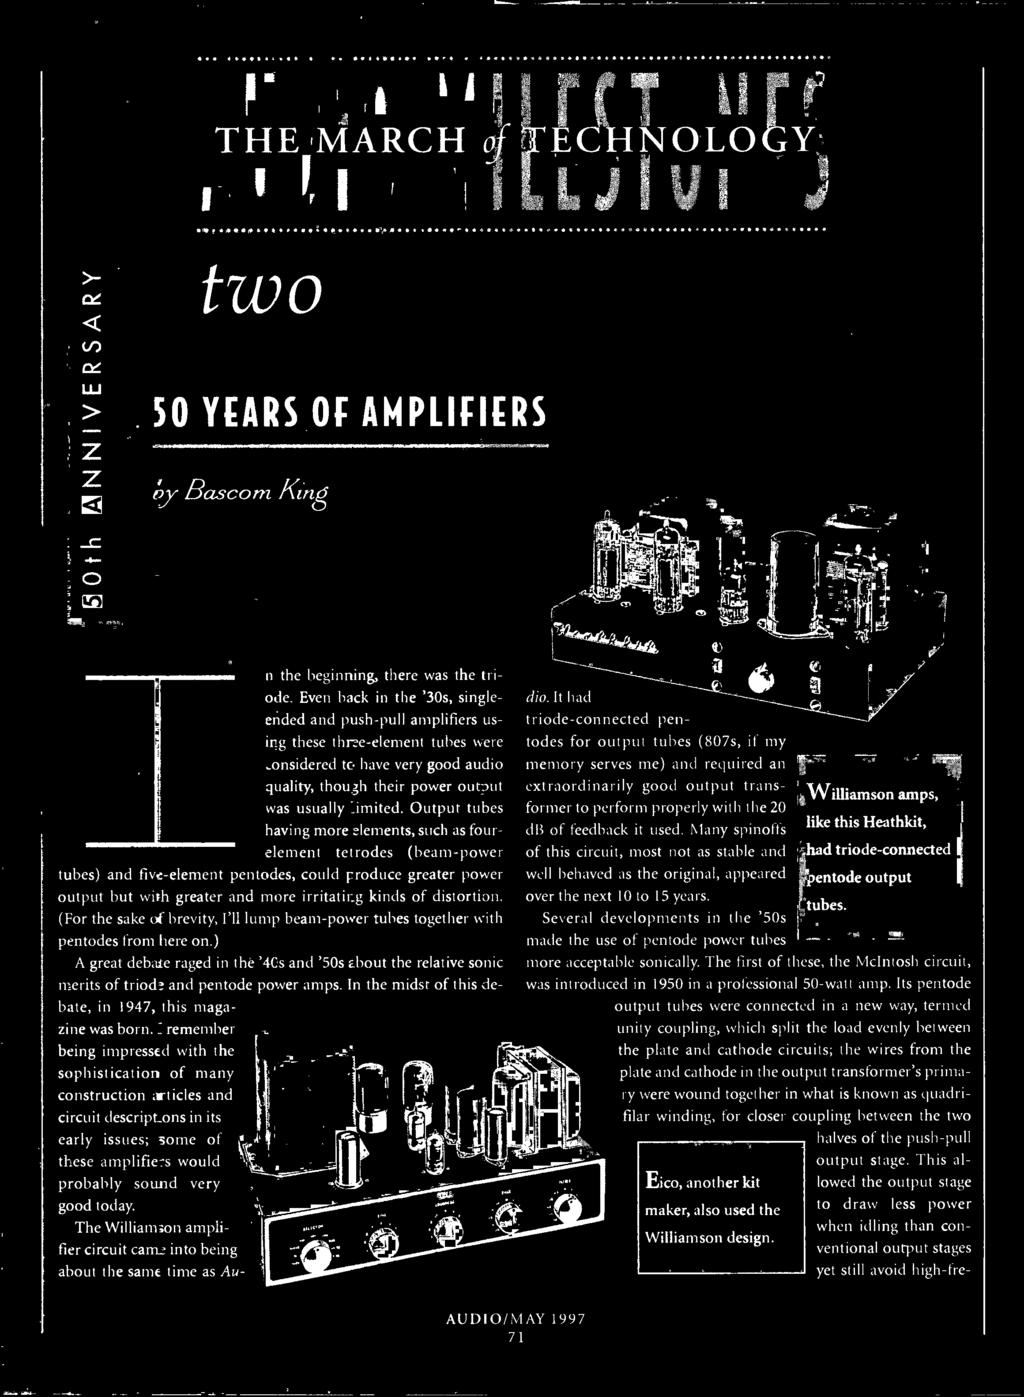 ) A great debate raged in the '40s and '50s about the relative sonic merits of triode and pentode power amps. In the midst of this debate, in 1947, this magazine was born.